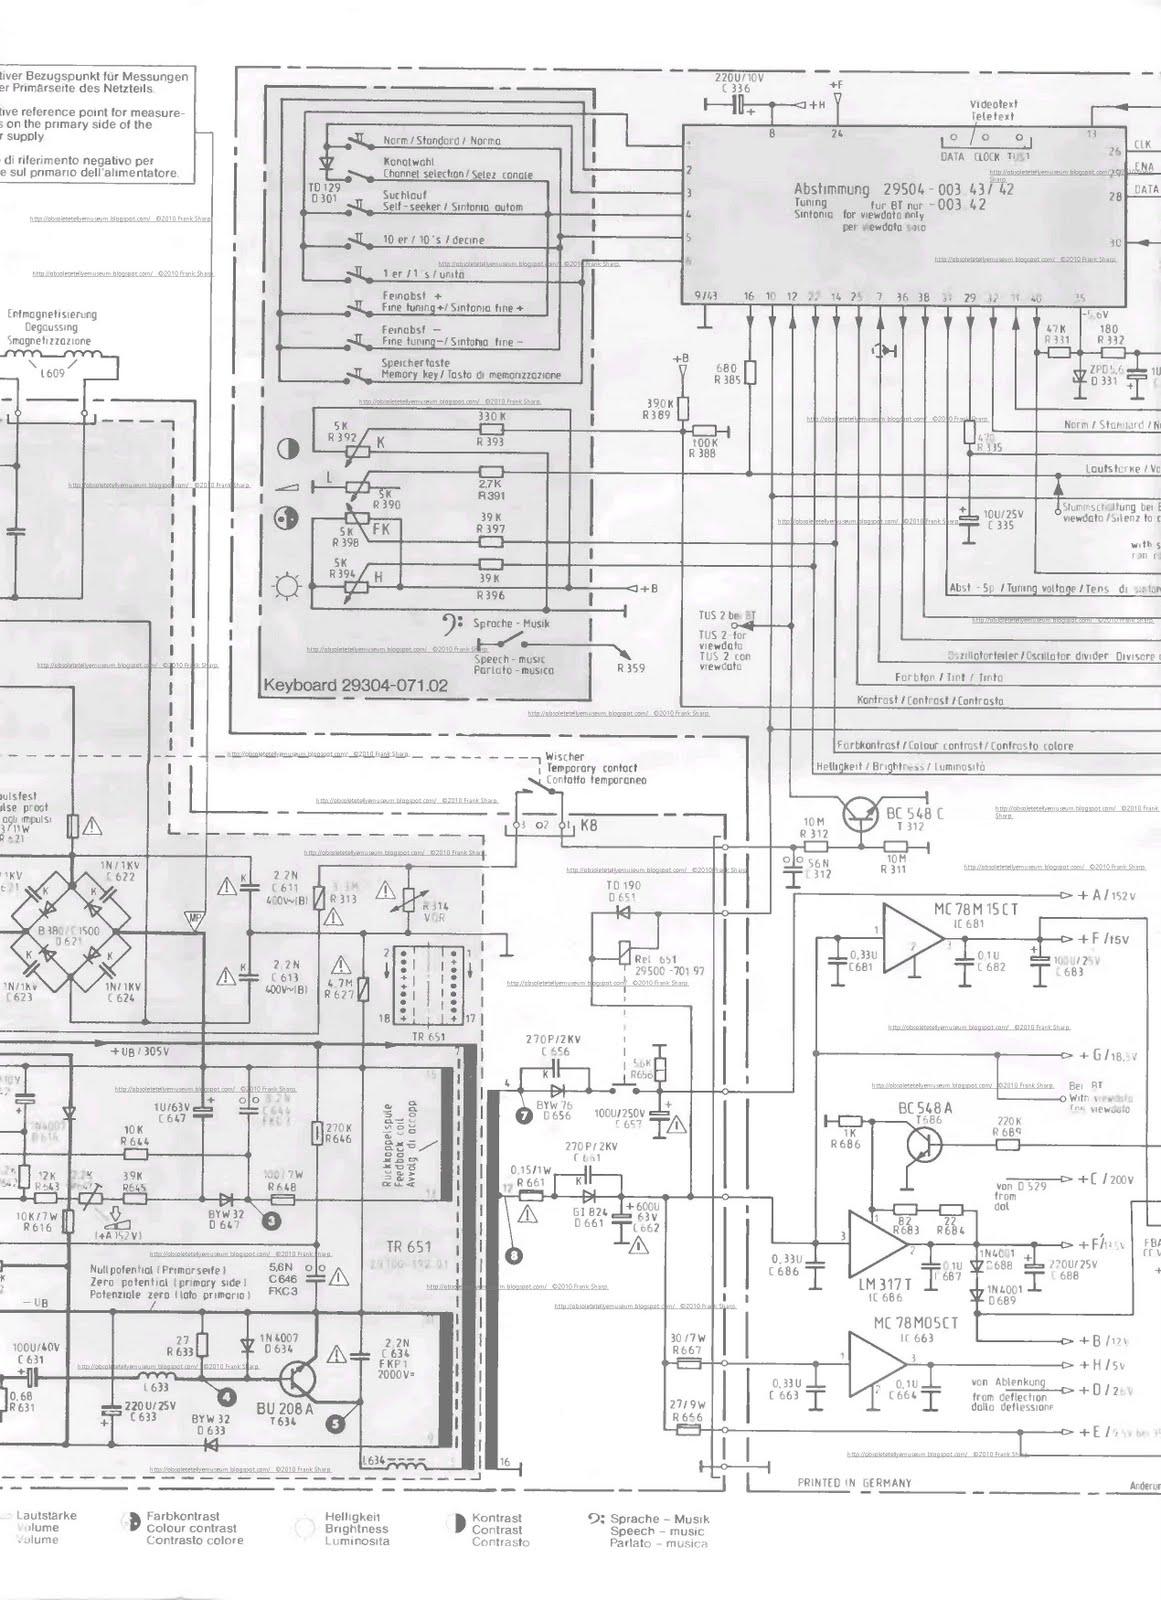 Obsolete Technology Tellye Grundig Super Color C7443 Serie F 3022 Shockley Sawtooth Wave Generator Circuit Schematic Pdf Format The Invention Relates To A Blocking Oscillator Type Switching Power Supply For Supplying Electrical Equipment Wherein Primary Winding Of